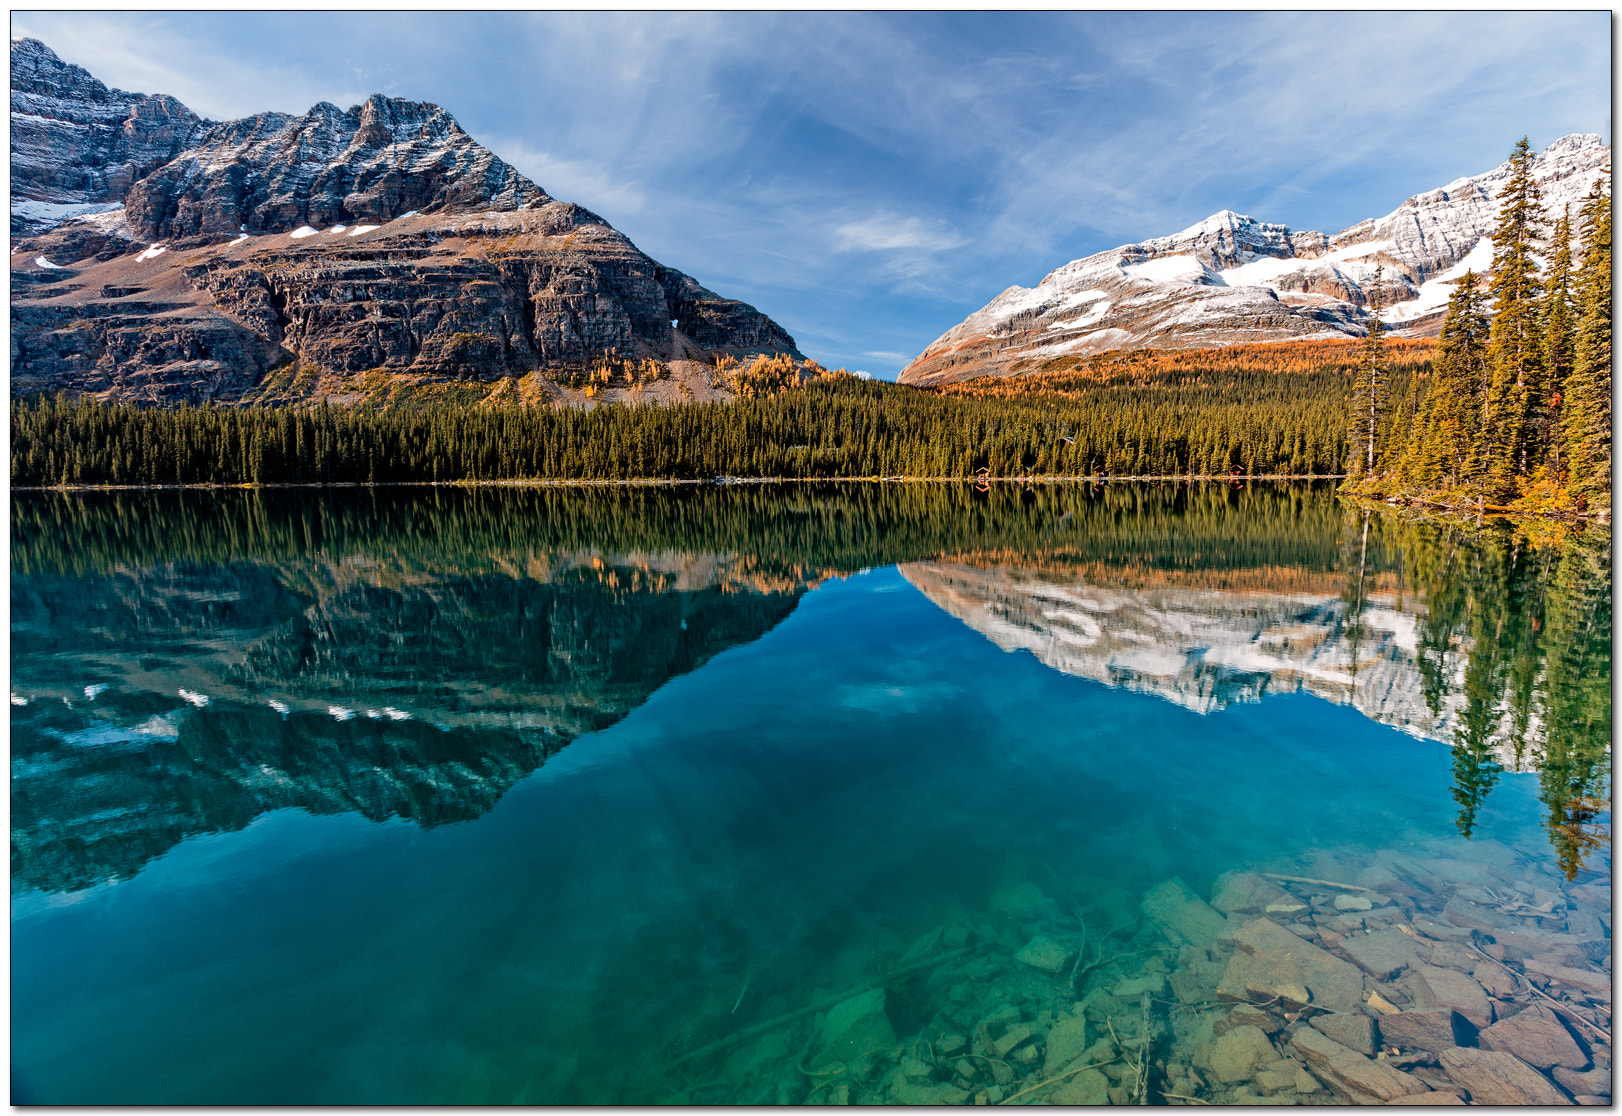 Photograph Lake O'Hara morning by Jameel Hyder on 500px